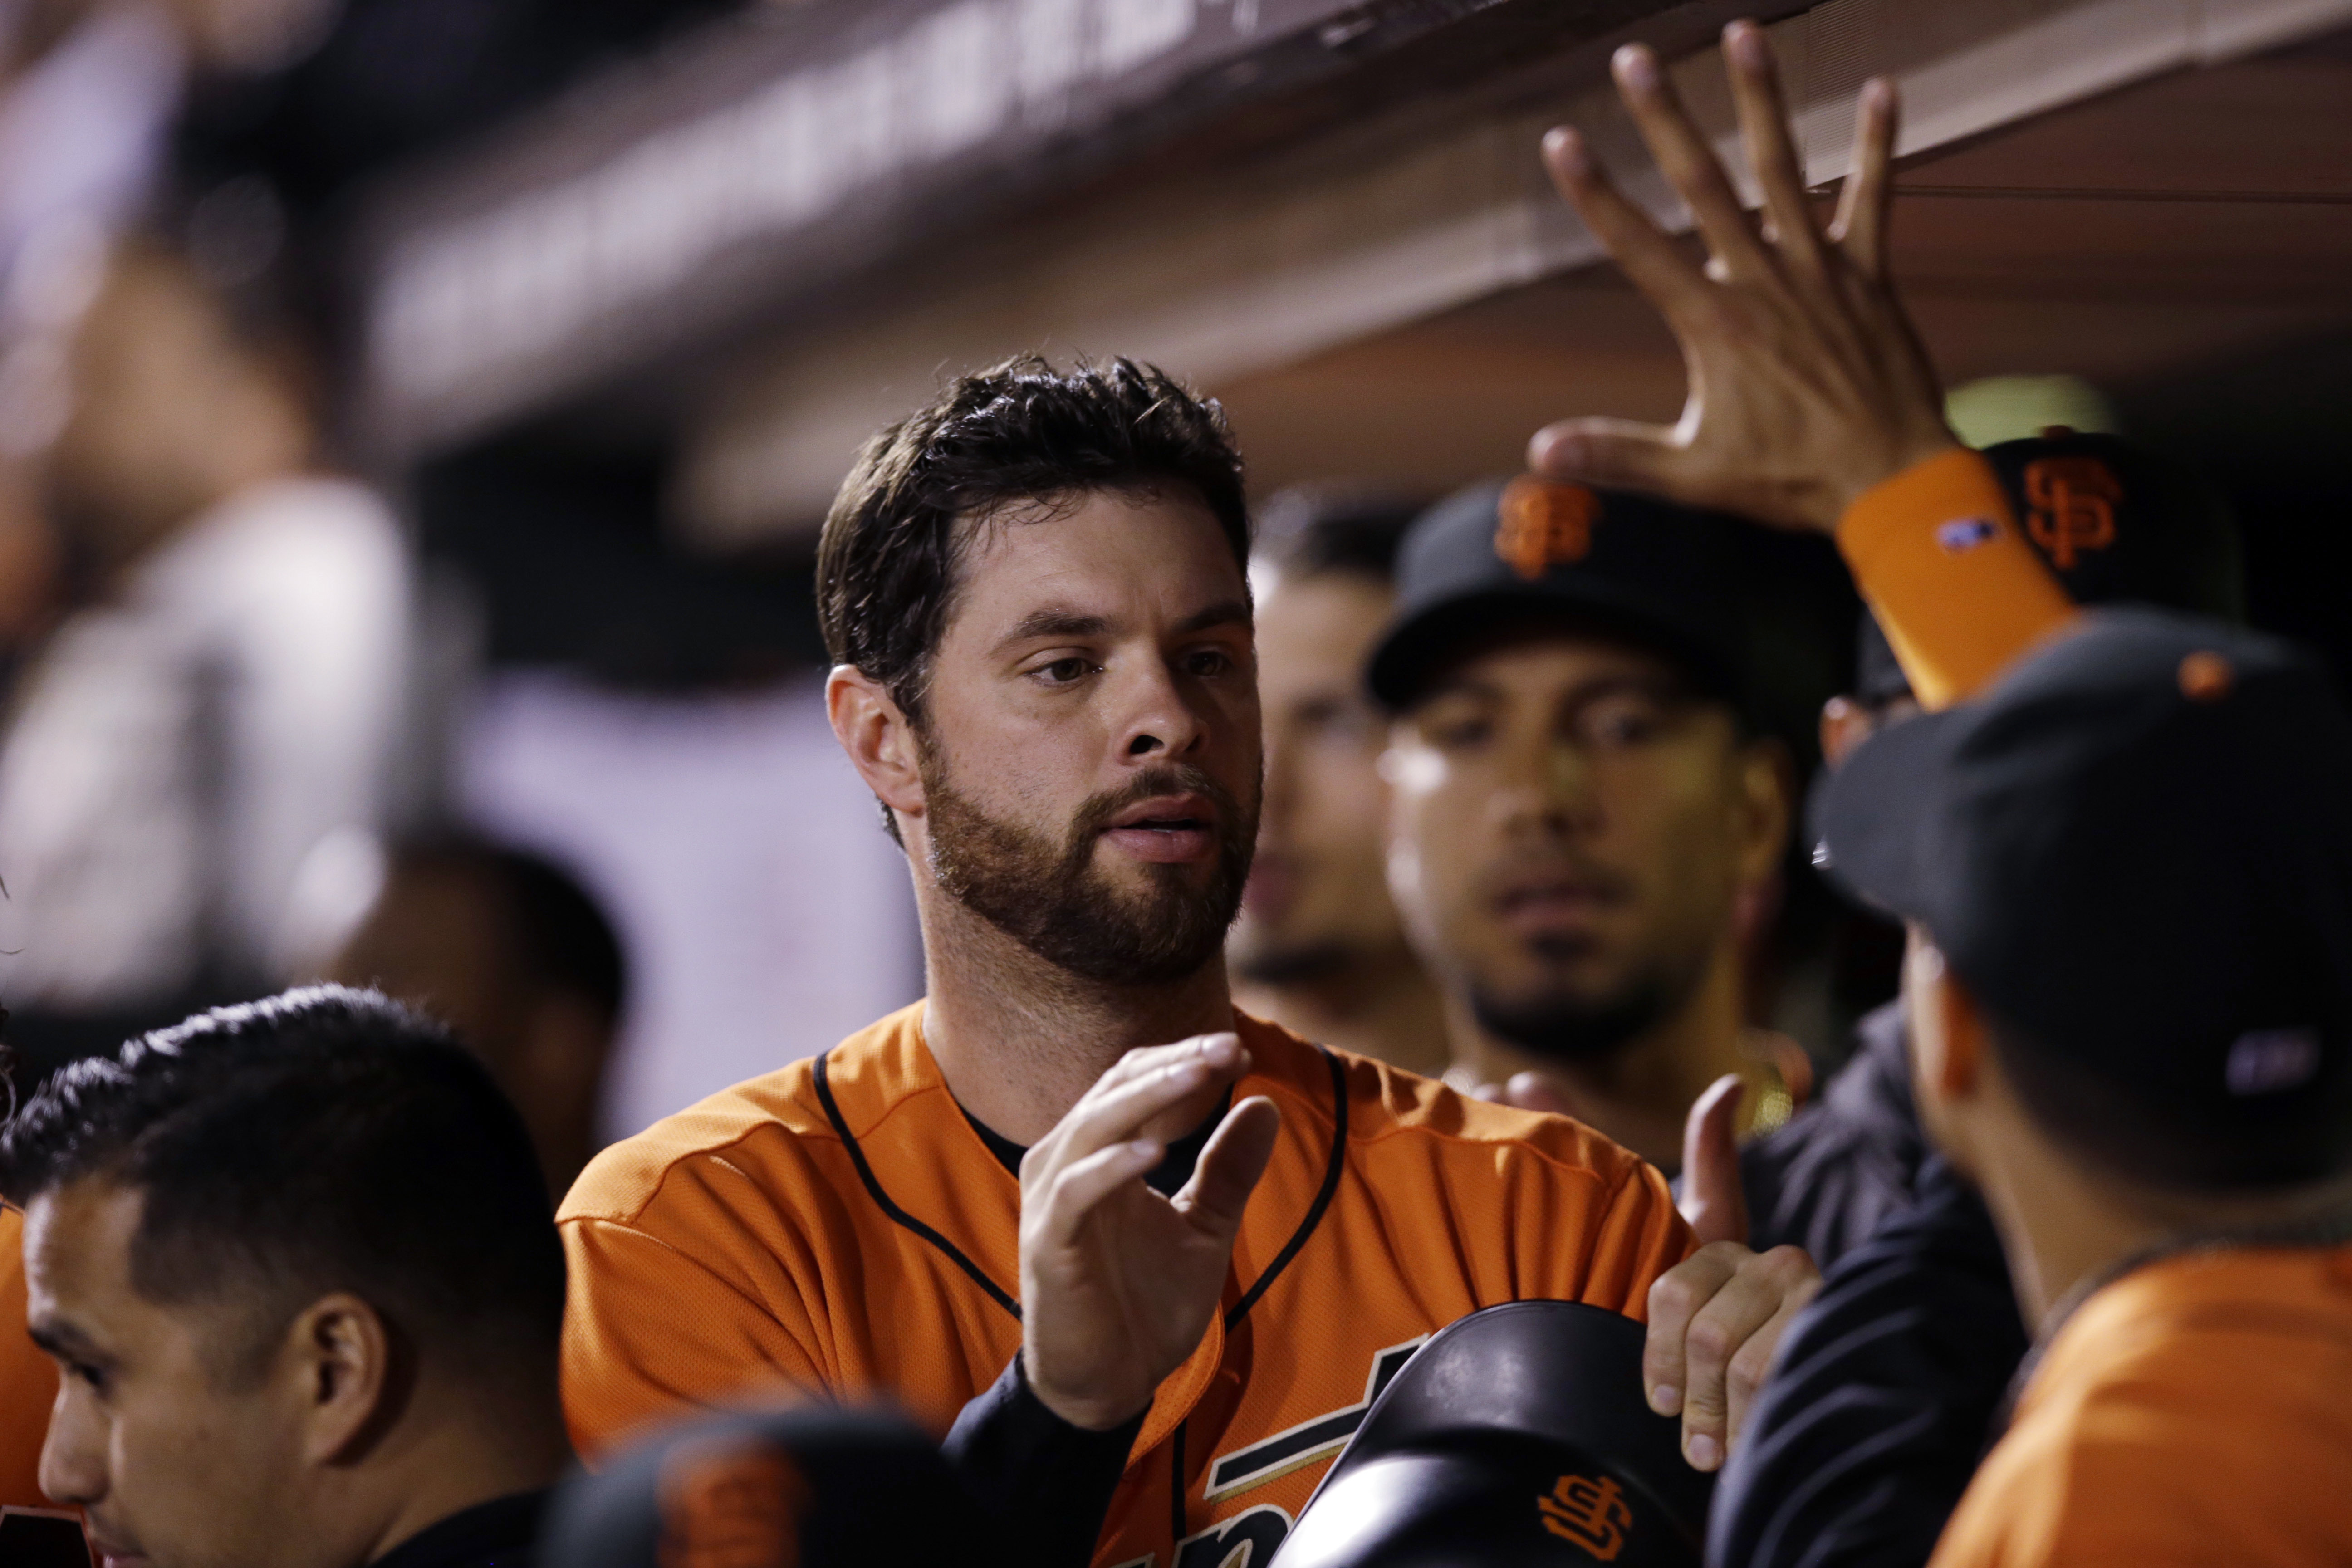 San Francisco Giants' Brandon Belt, center, is greeted in the dugout after scoring on a single by Angel Pagan during the seventh inning of a baseball game against the Philadelphia Phillies on Friday, June 24, 2016, in San Francisco. (AP Photo/Marcio Jose